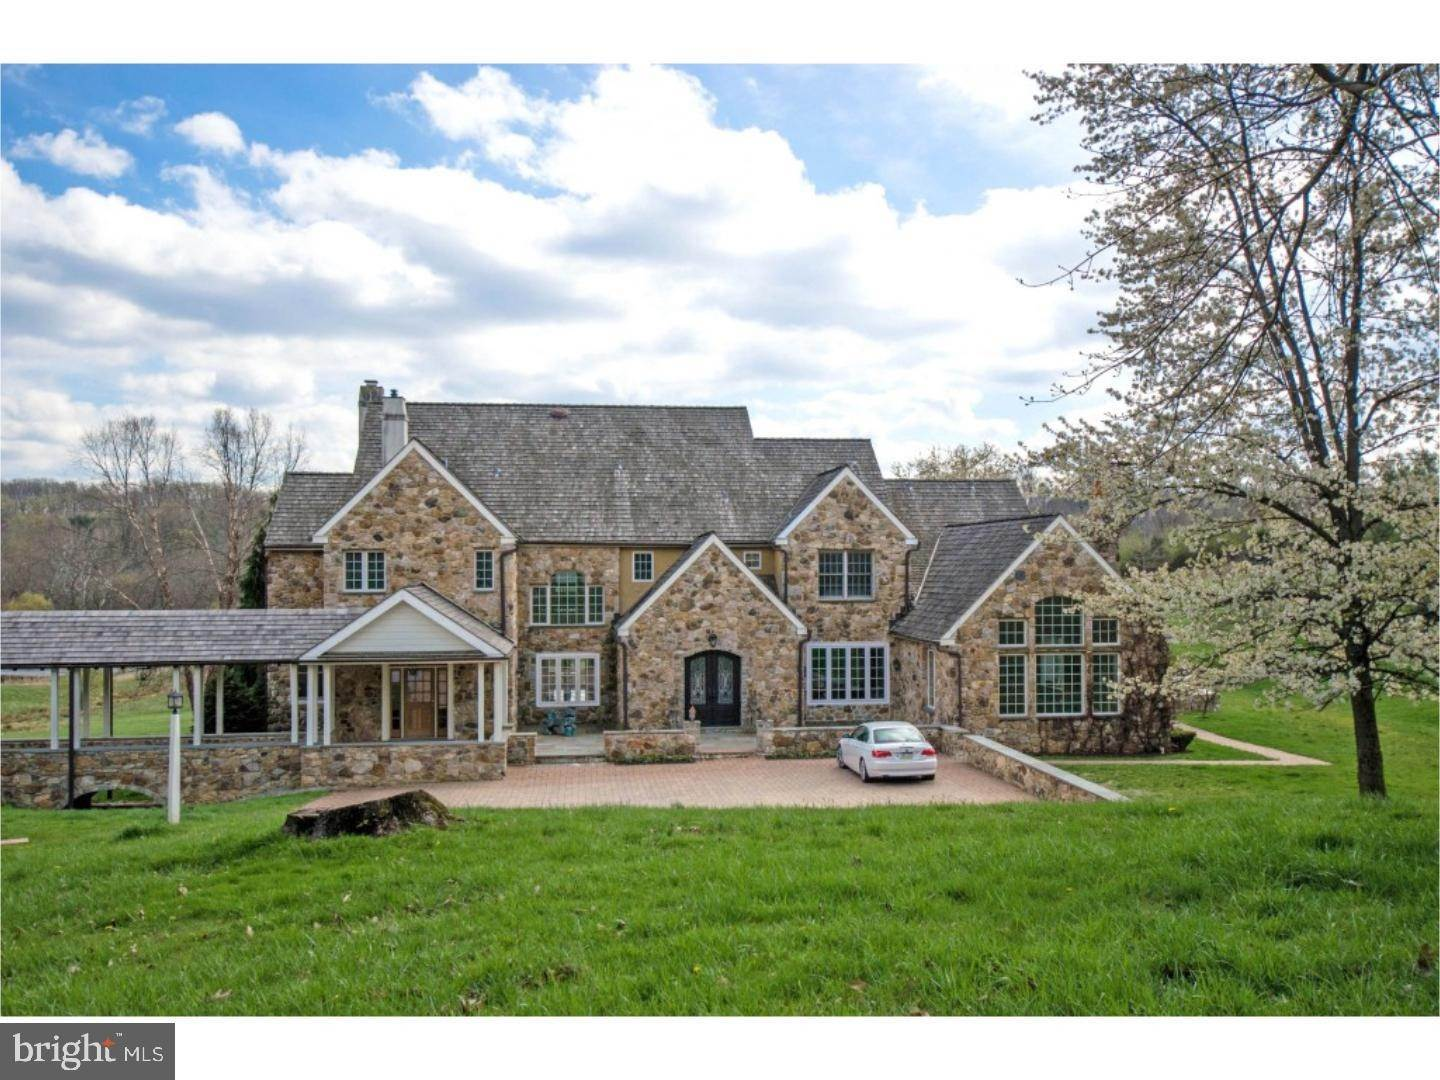 2. Detached House for Sale at 38 HARRISON Drive Newtown Square, Pennsylvania 19073 United States